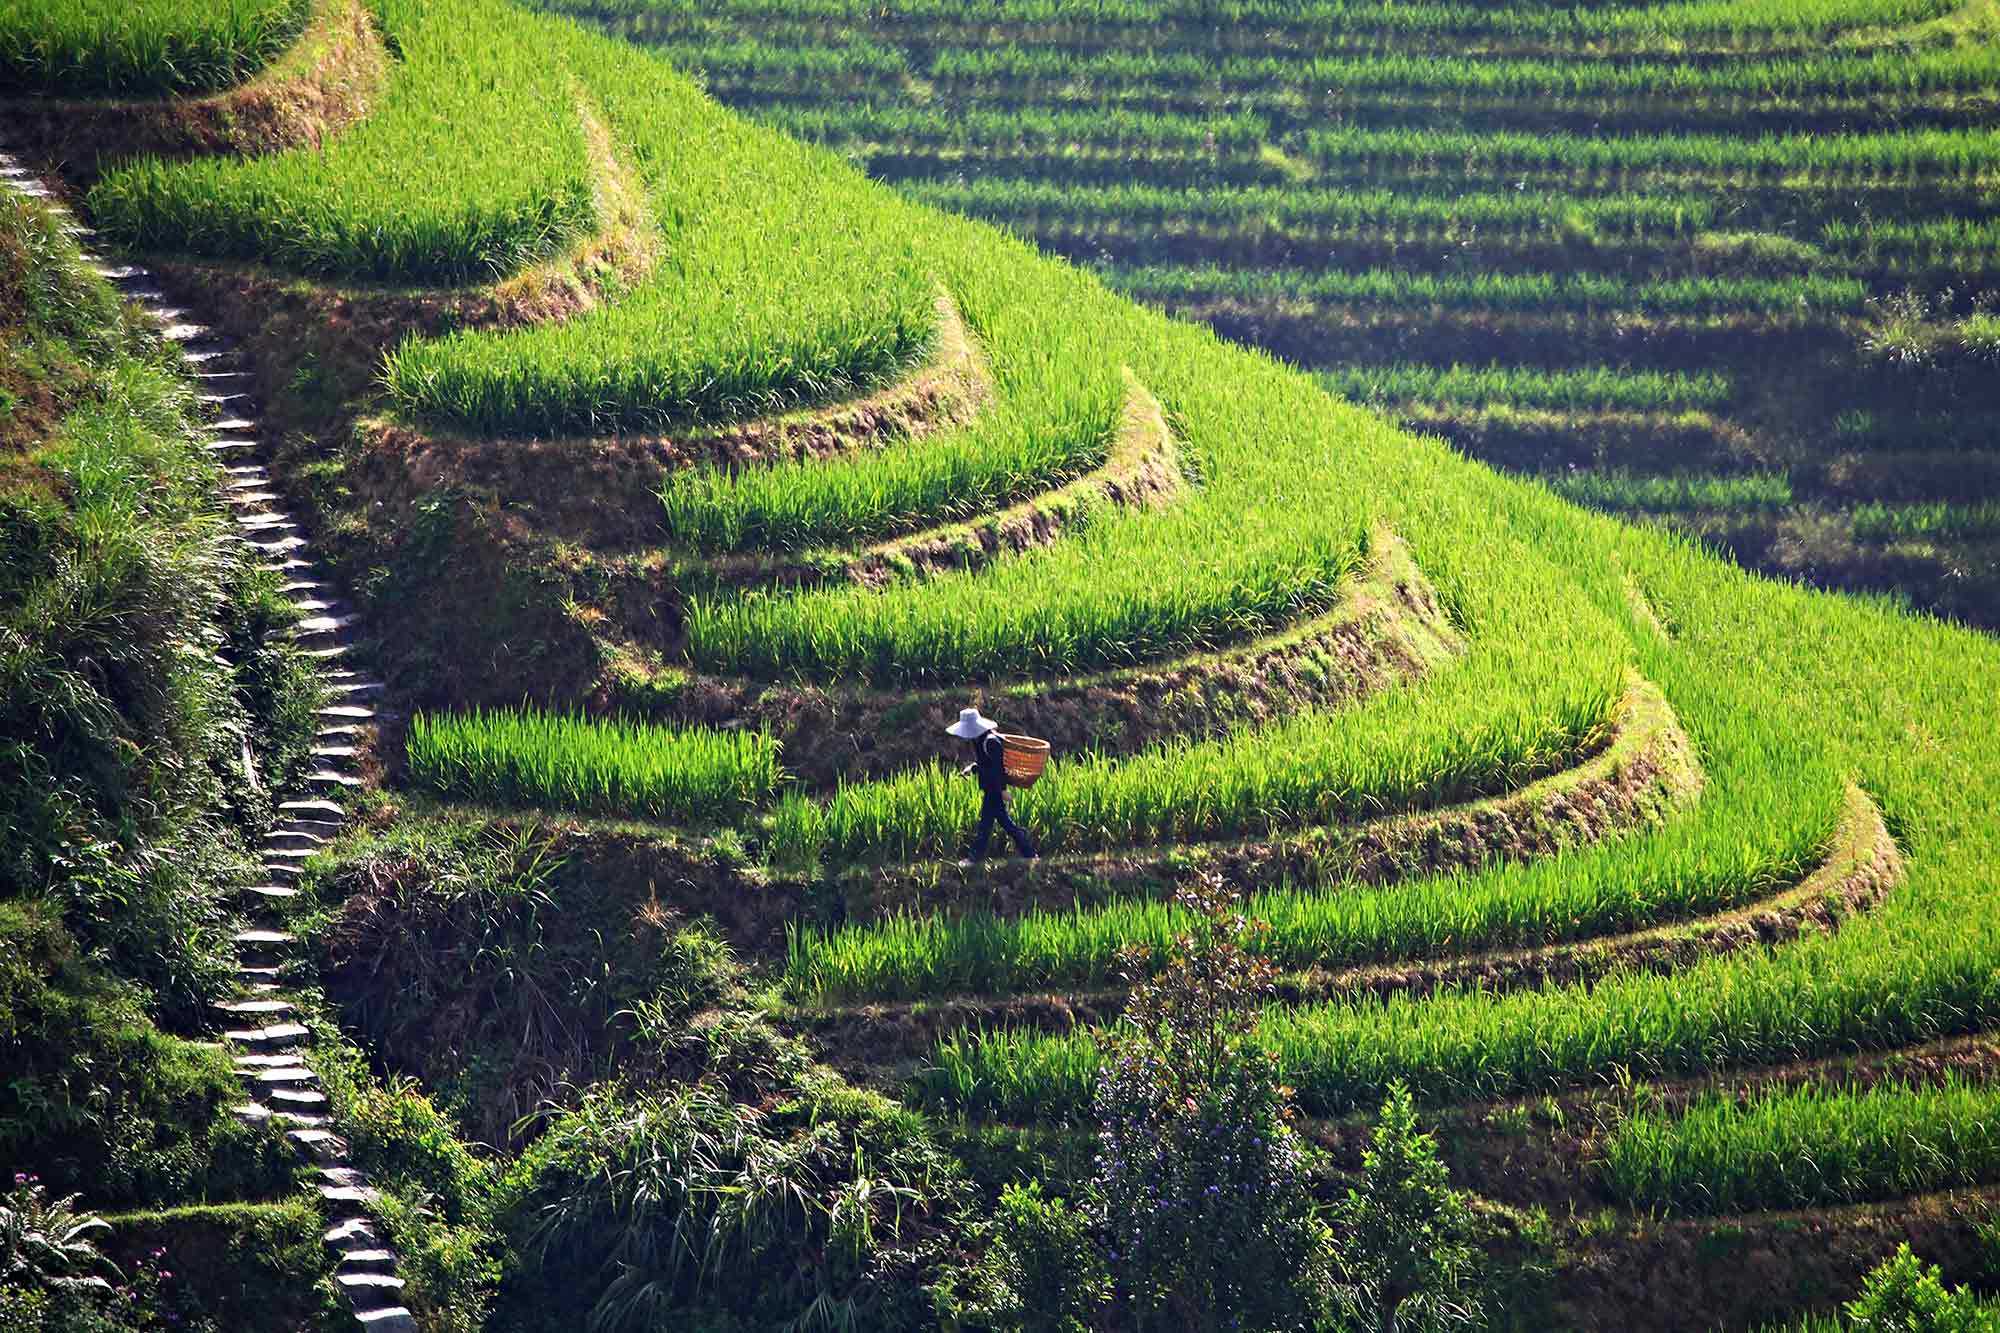 Dragon S Backbone Rice Terraces In Guanxi China Travel